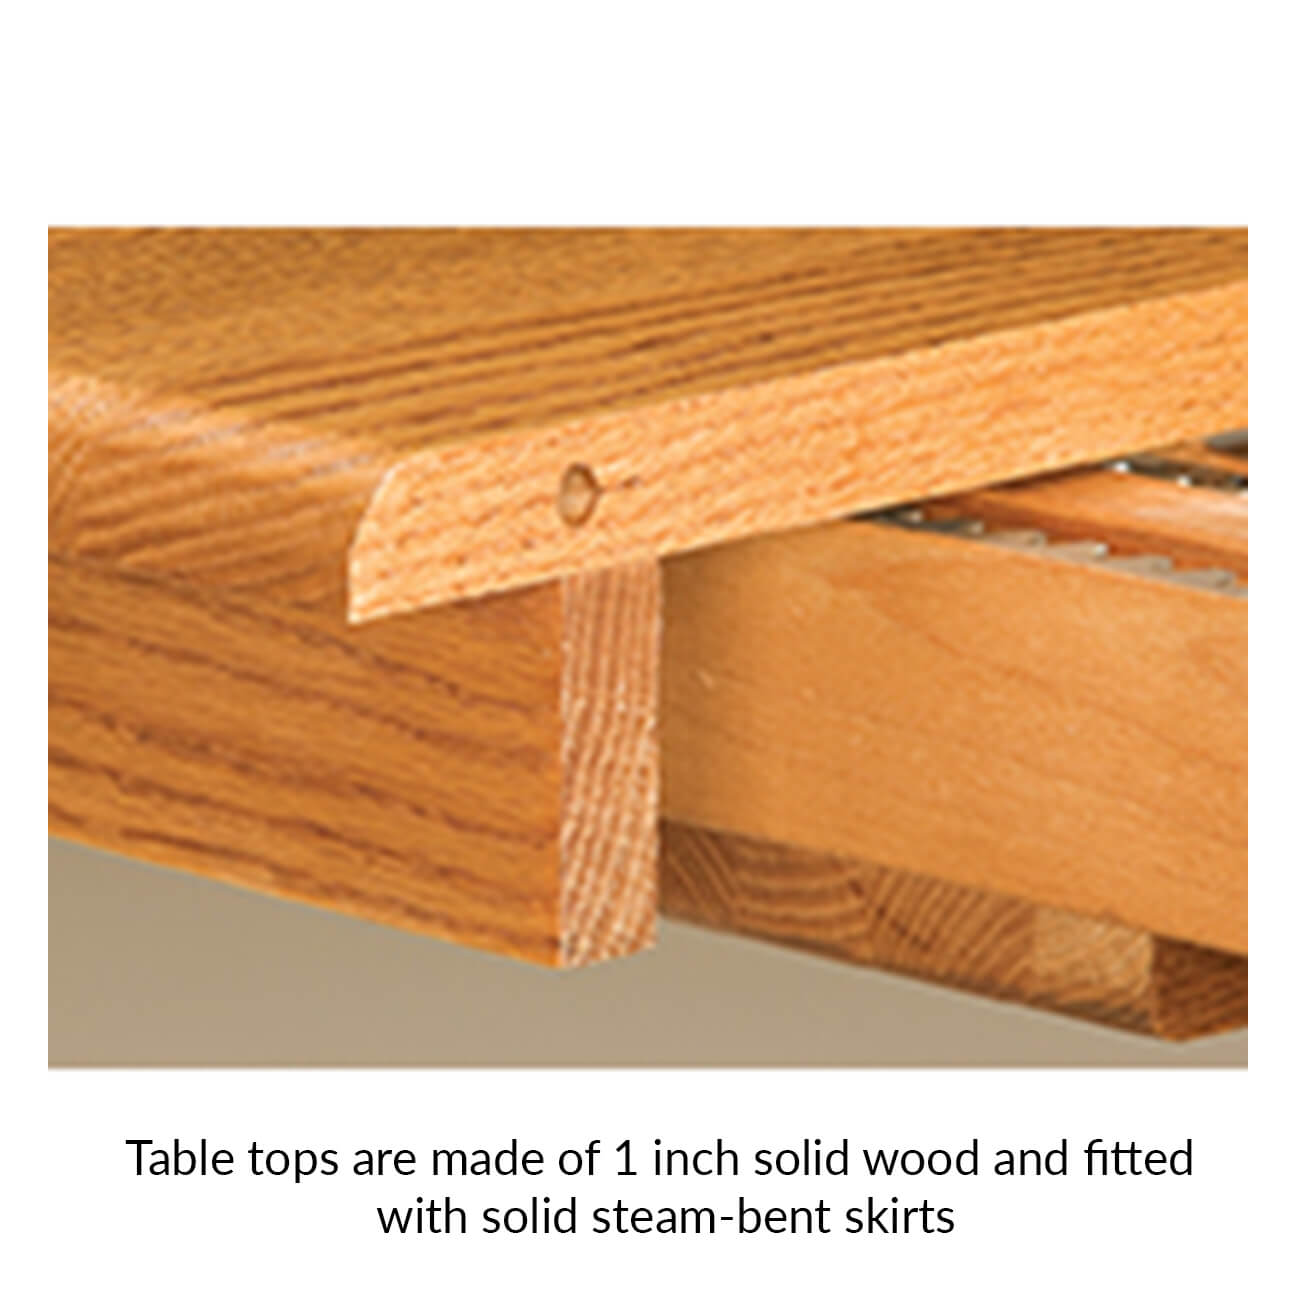 0.0-table-tops-are-made-of-1-inch-solid-wood-and-fitted-with-solid-steam-bent-skirts-copy.jpg